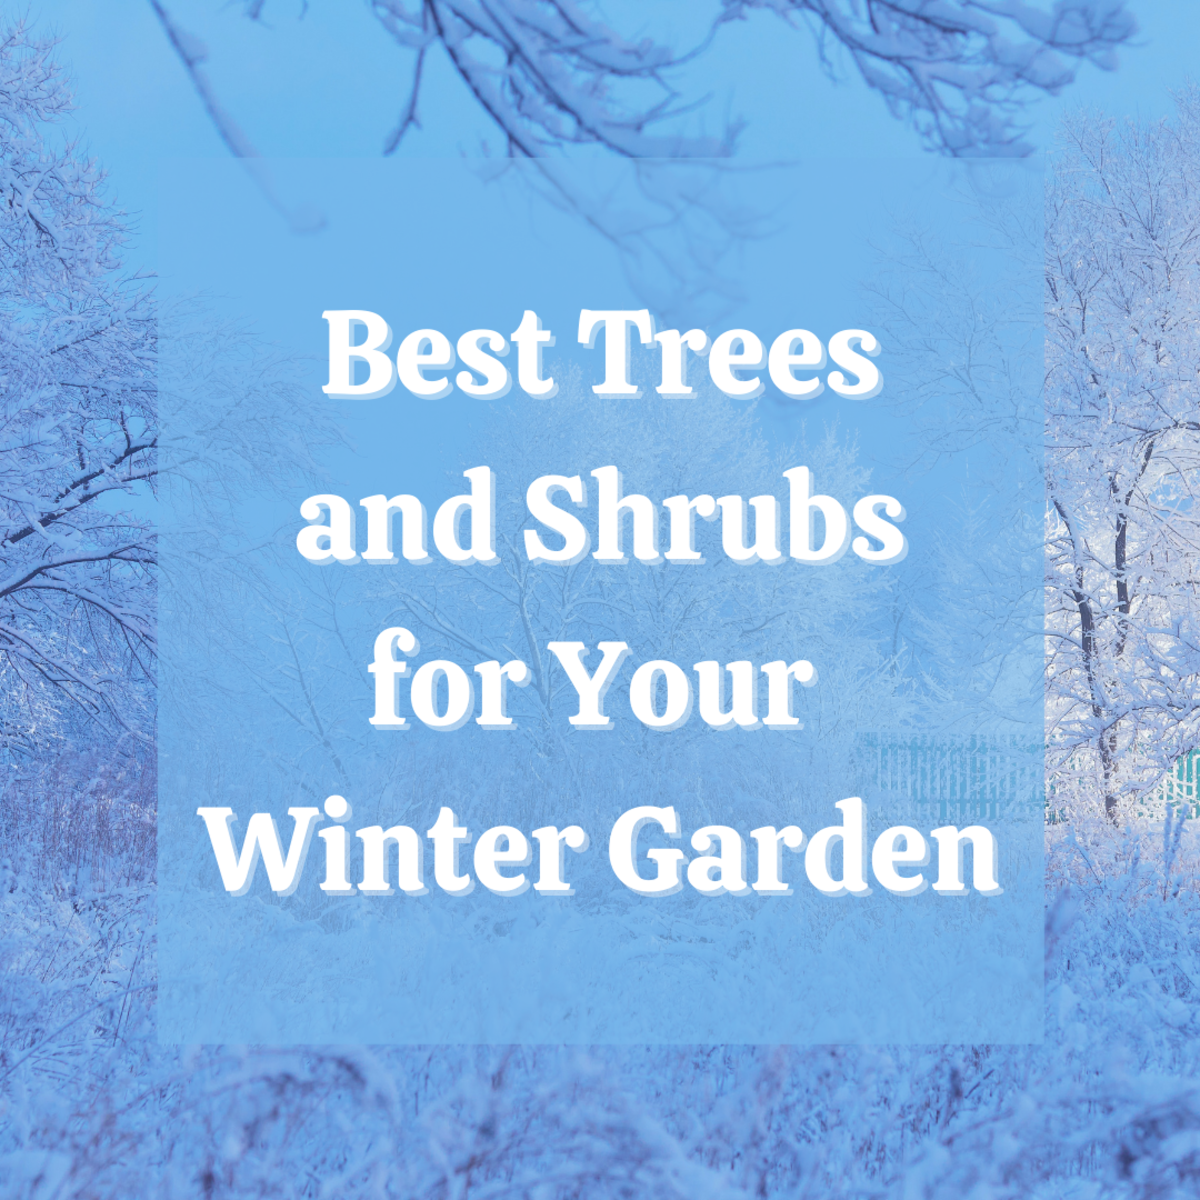 Discover 13 amazing shrubs and trees to plant in your garden to ensure color and beauty even in winter months